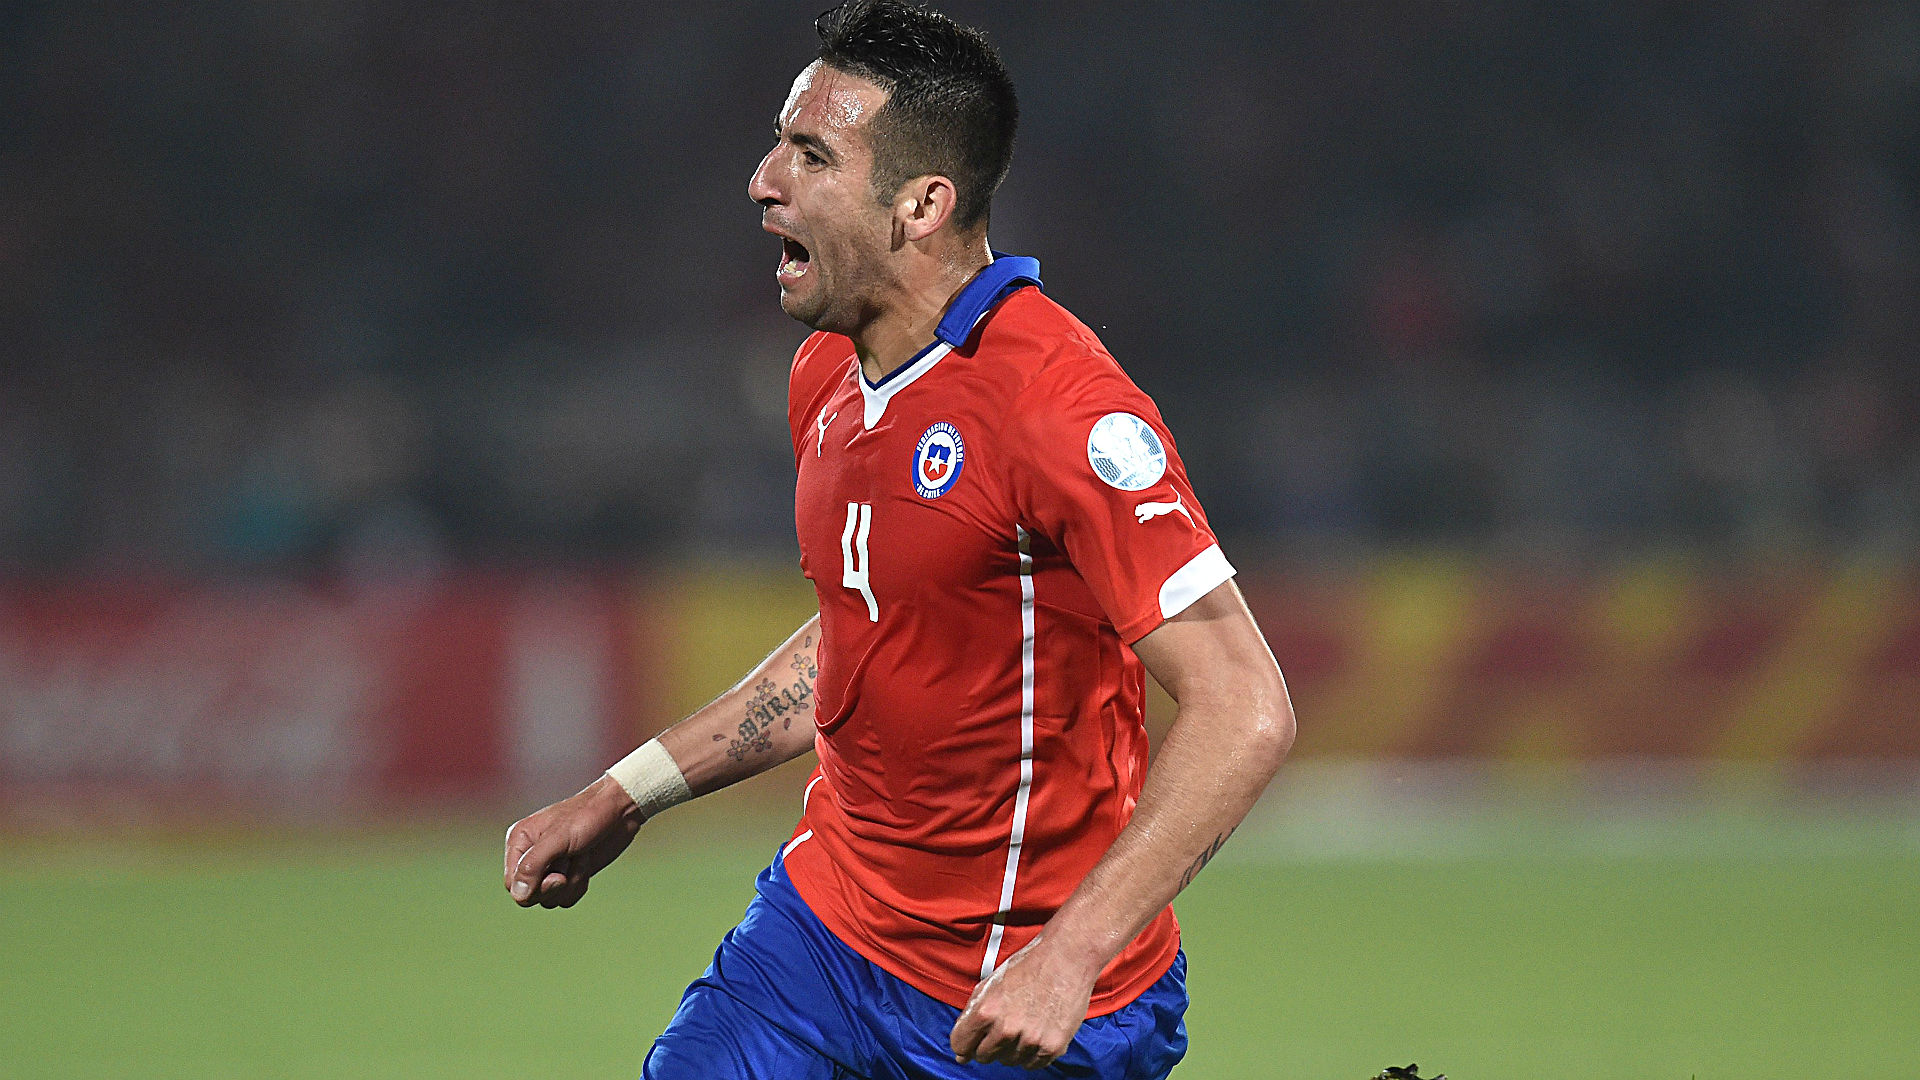 Chile vs. Peru odds and pick – An unconventional bet to consider